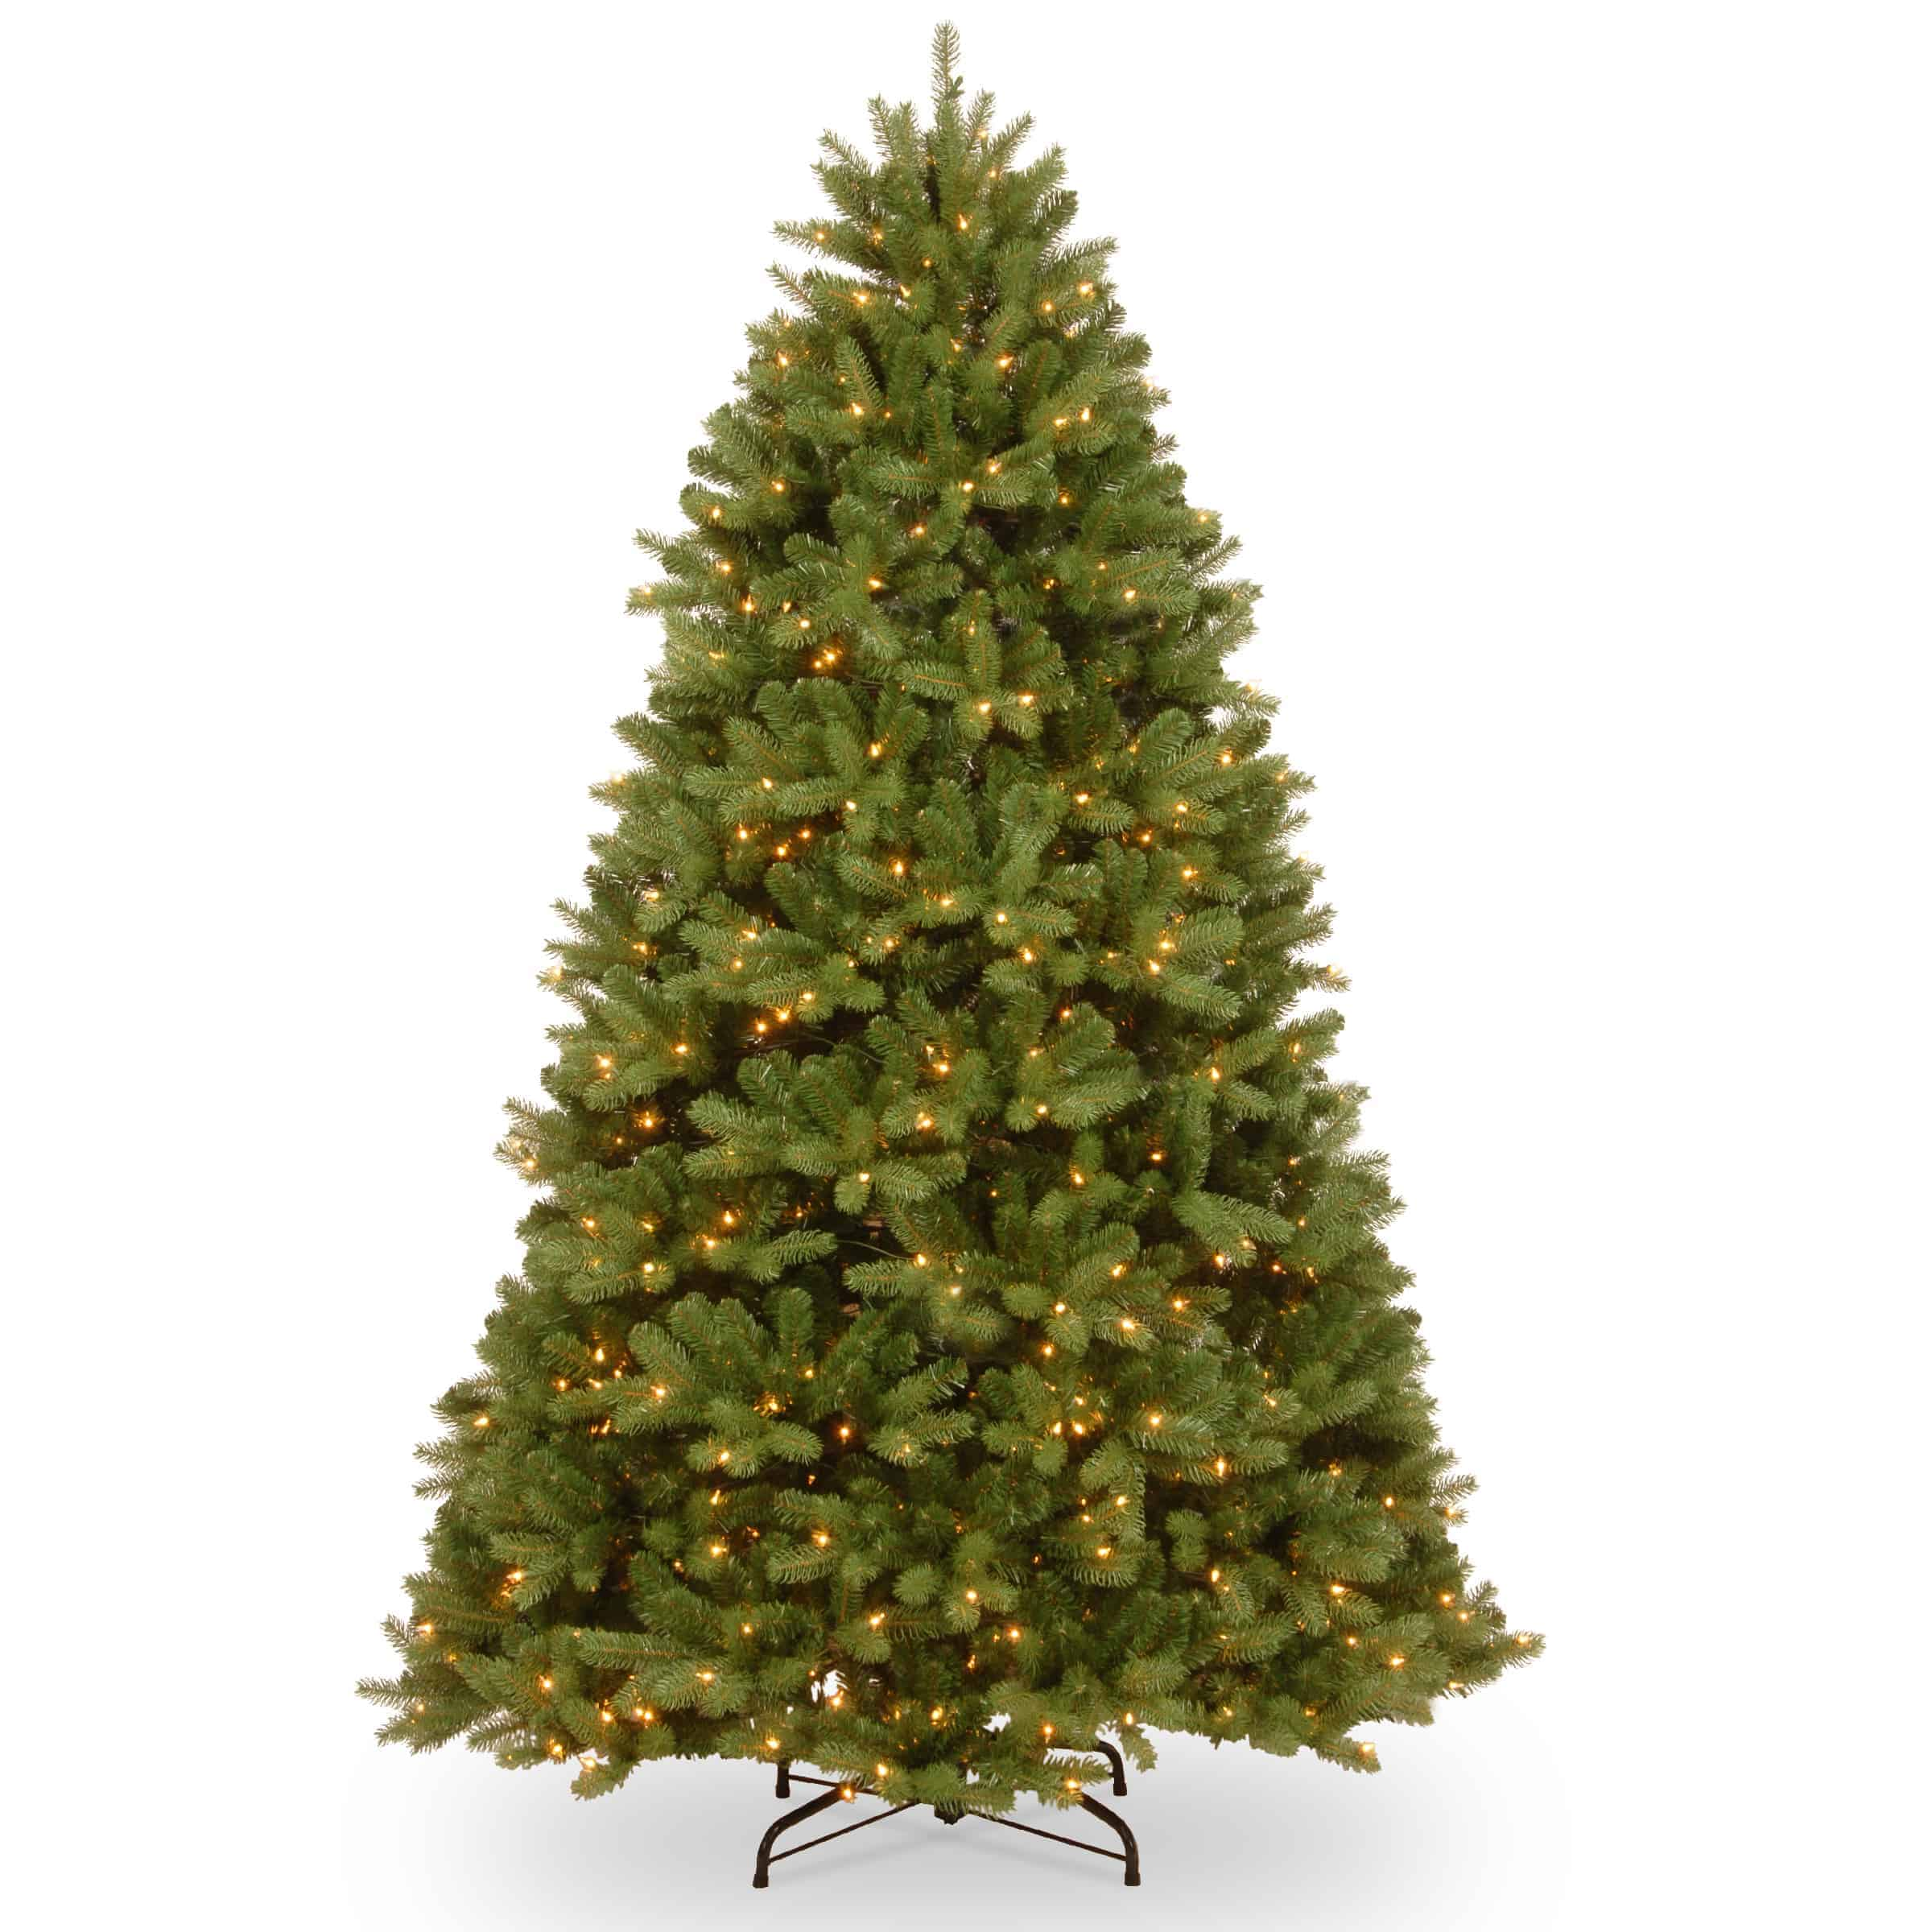 9ft Christmas Tree.9ft Newberry Spruce Pre Lit Artificial Christmas Tree